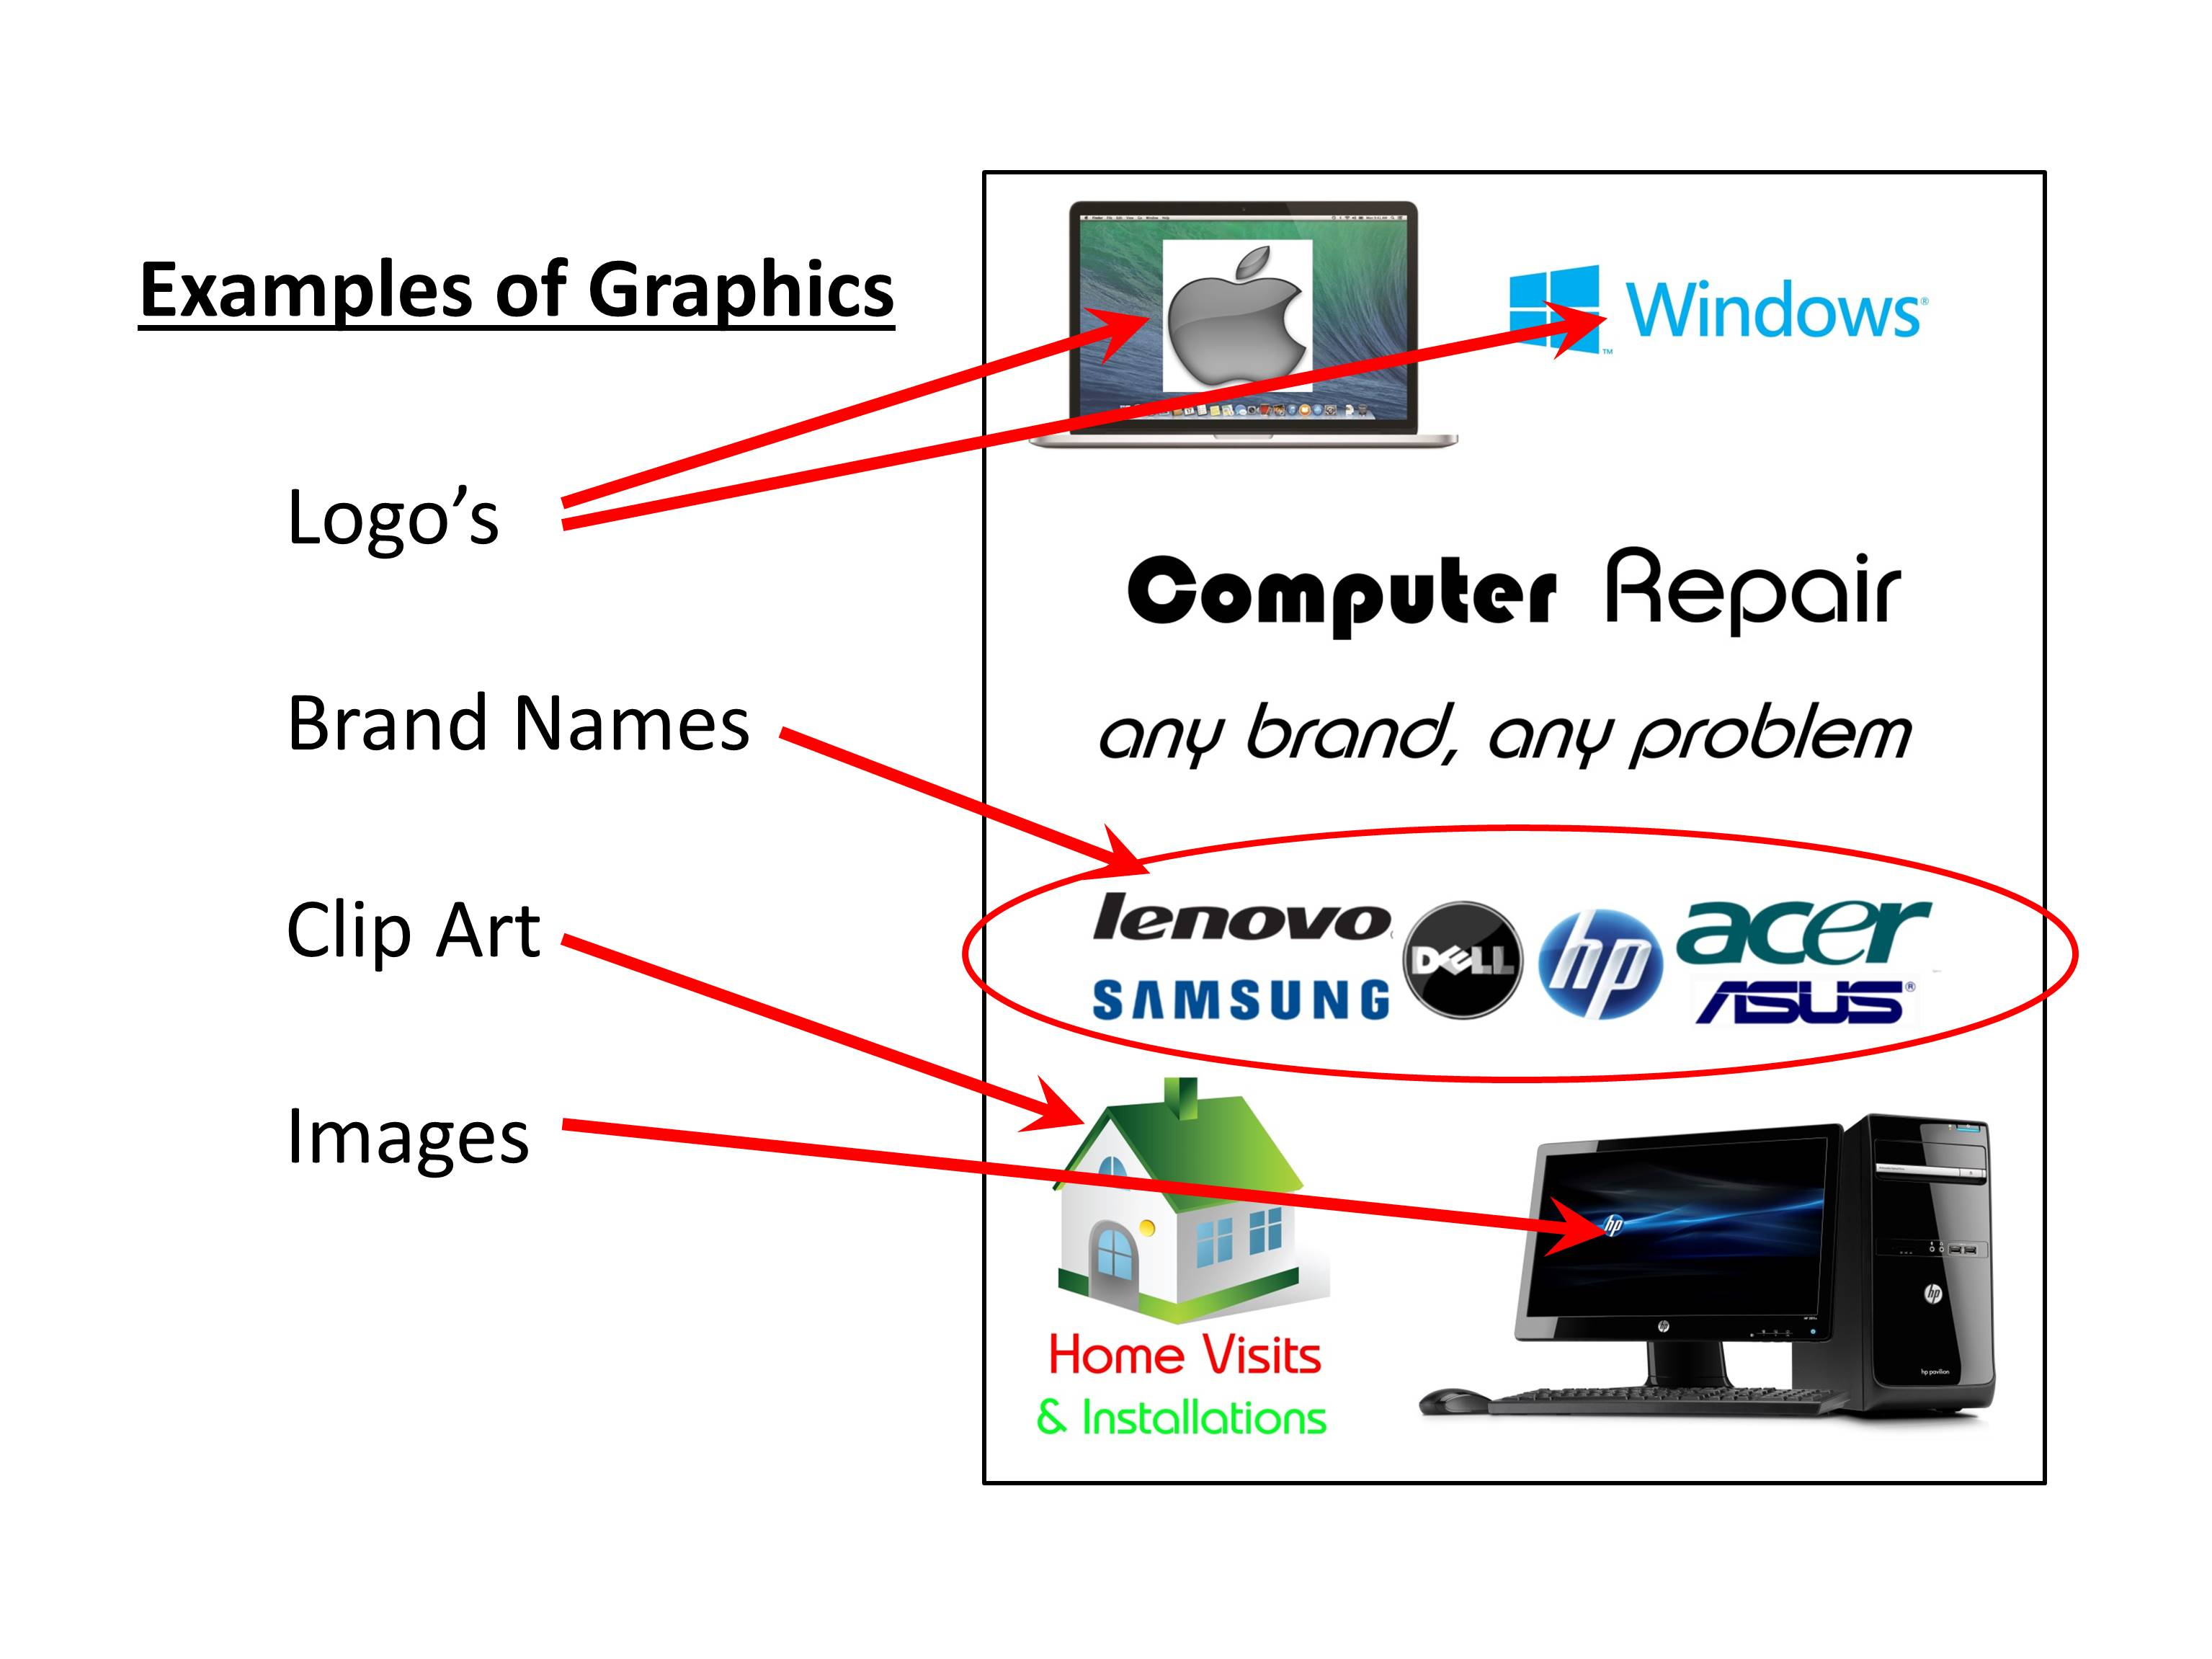 Posters and signs in windows must be clear, so graphics have to be used with care – it's very easy to clutter a design